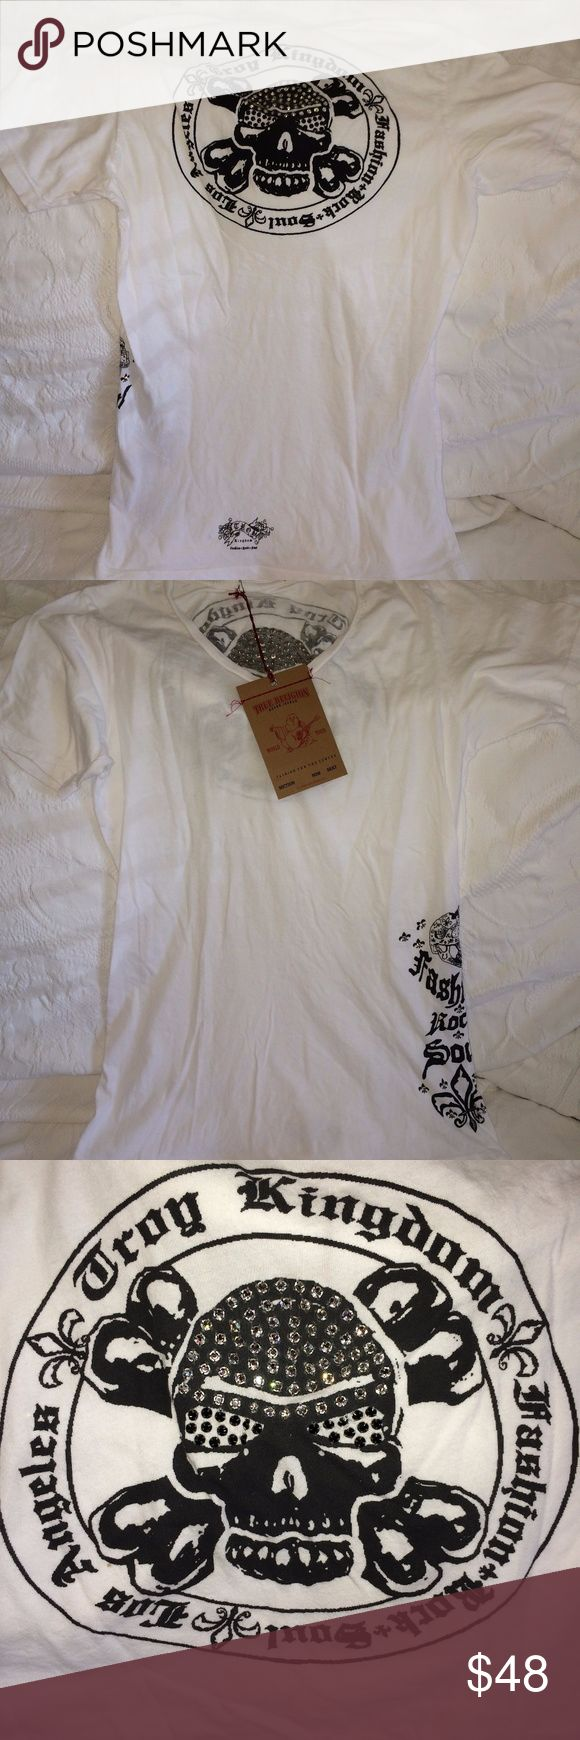 White True Religion T-shirt Brand new True Religion t-shirt with black beaded details on front and back. Never worn. New with tags. True Religion Tops Tees - Short Sleeve